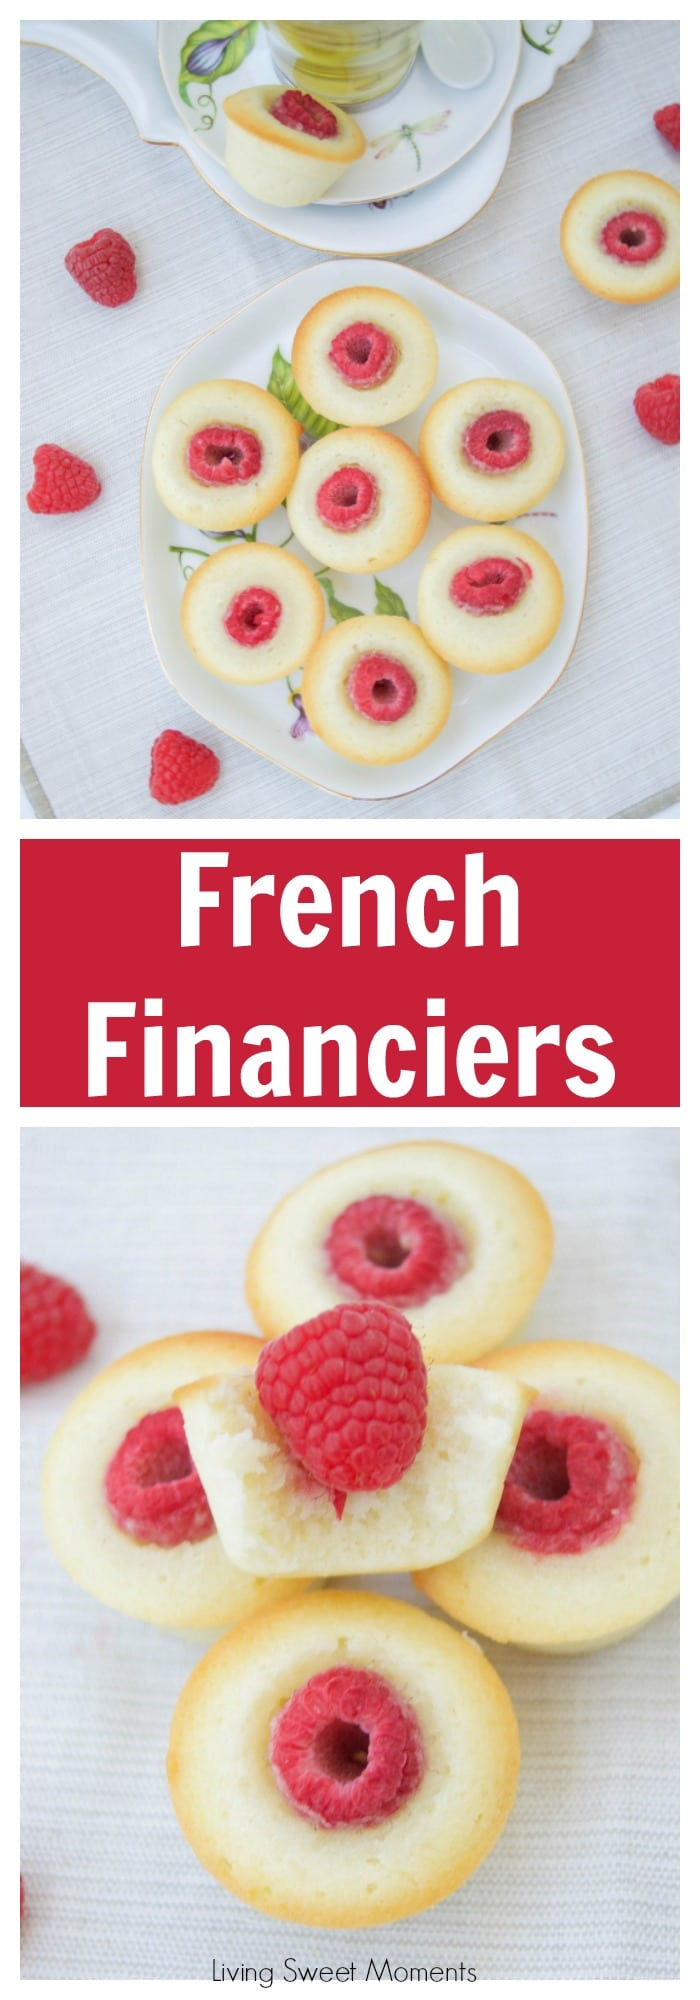 Financiers Recipe - this delicate french almond cake is flavored with browned butter and is super easy to make. The perfect dessert to enjoy with tea.